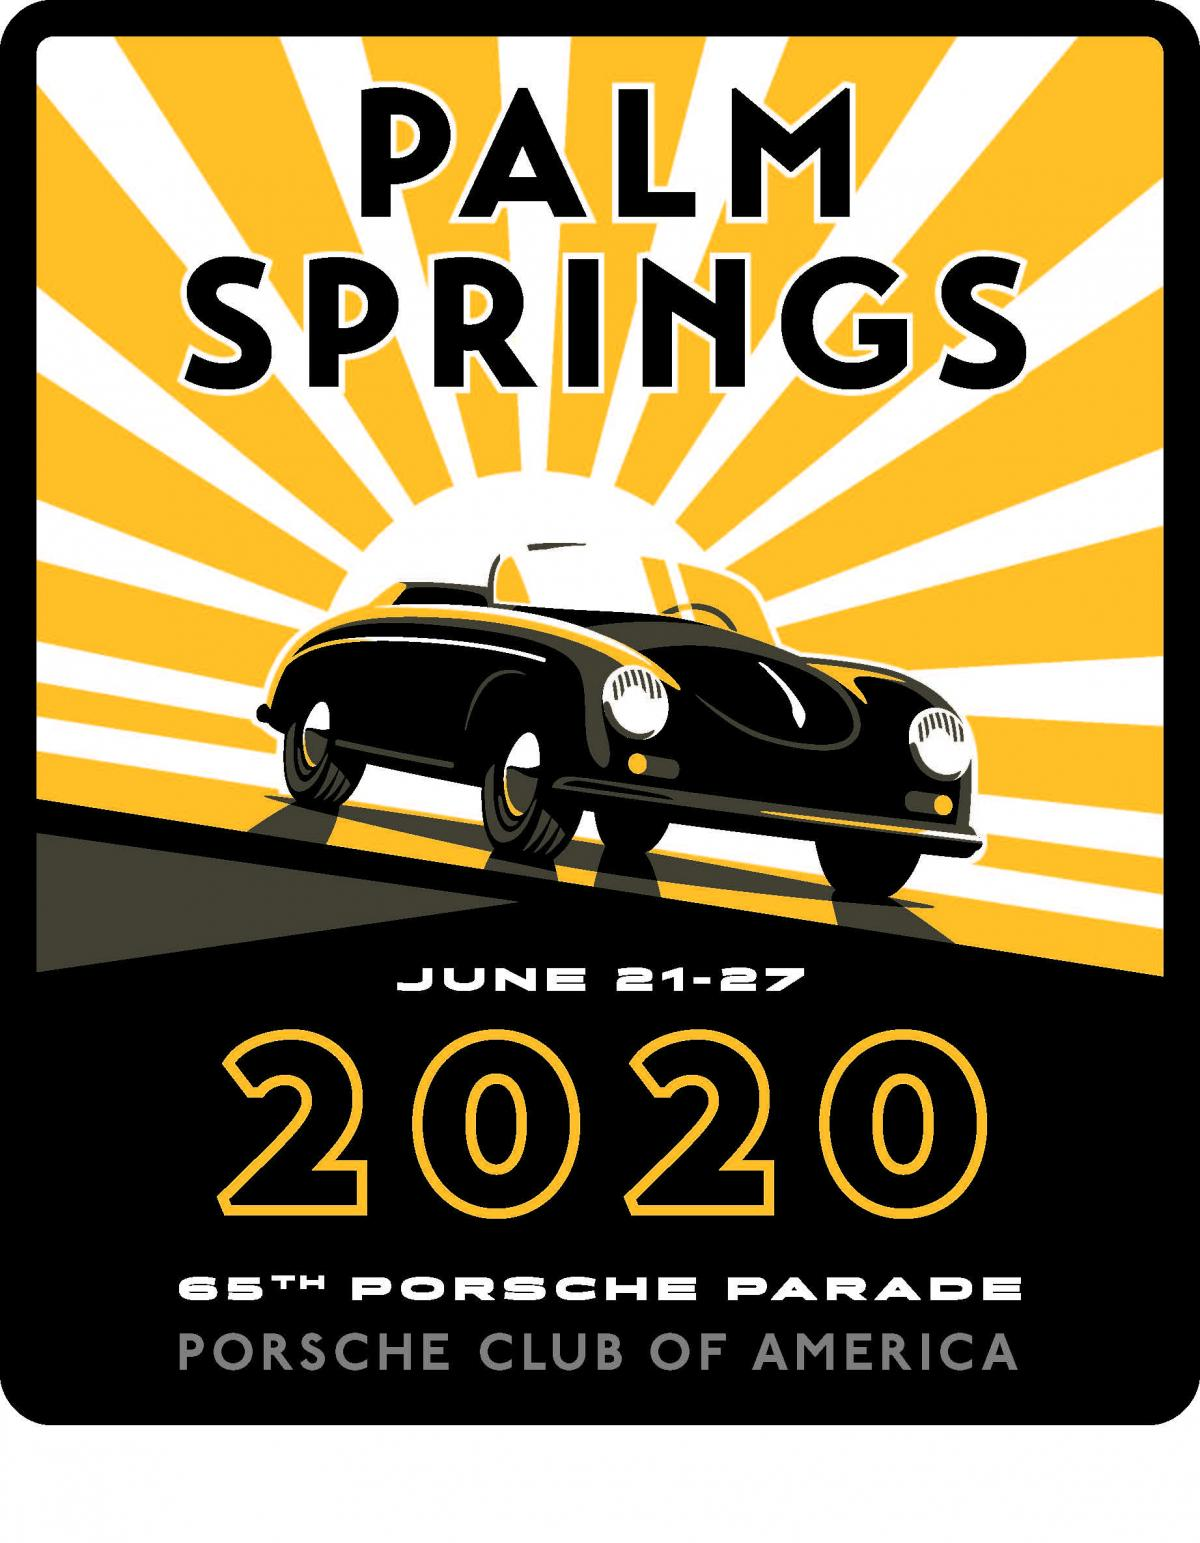 PCA_Parade_PalmSprings2020_w-date_4 Magnets_PCA BRANDING